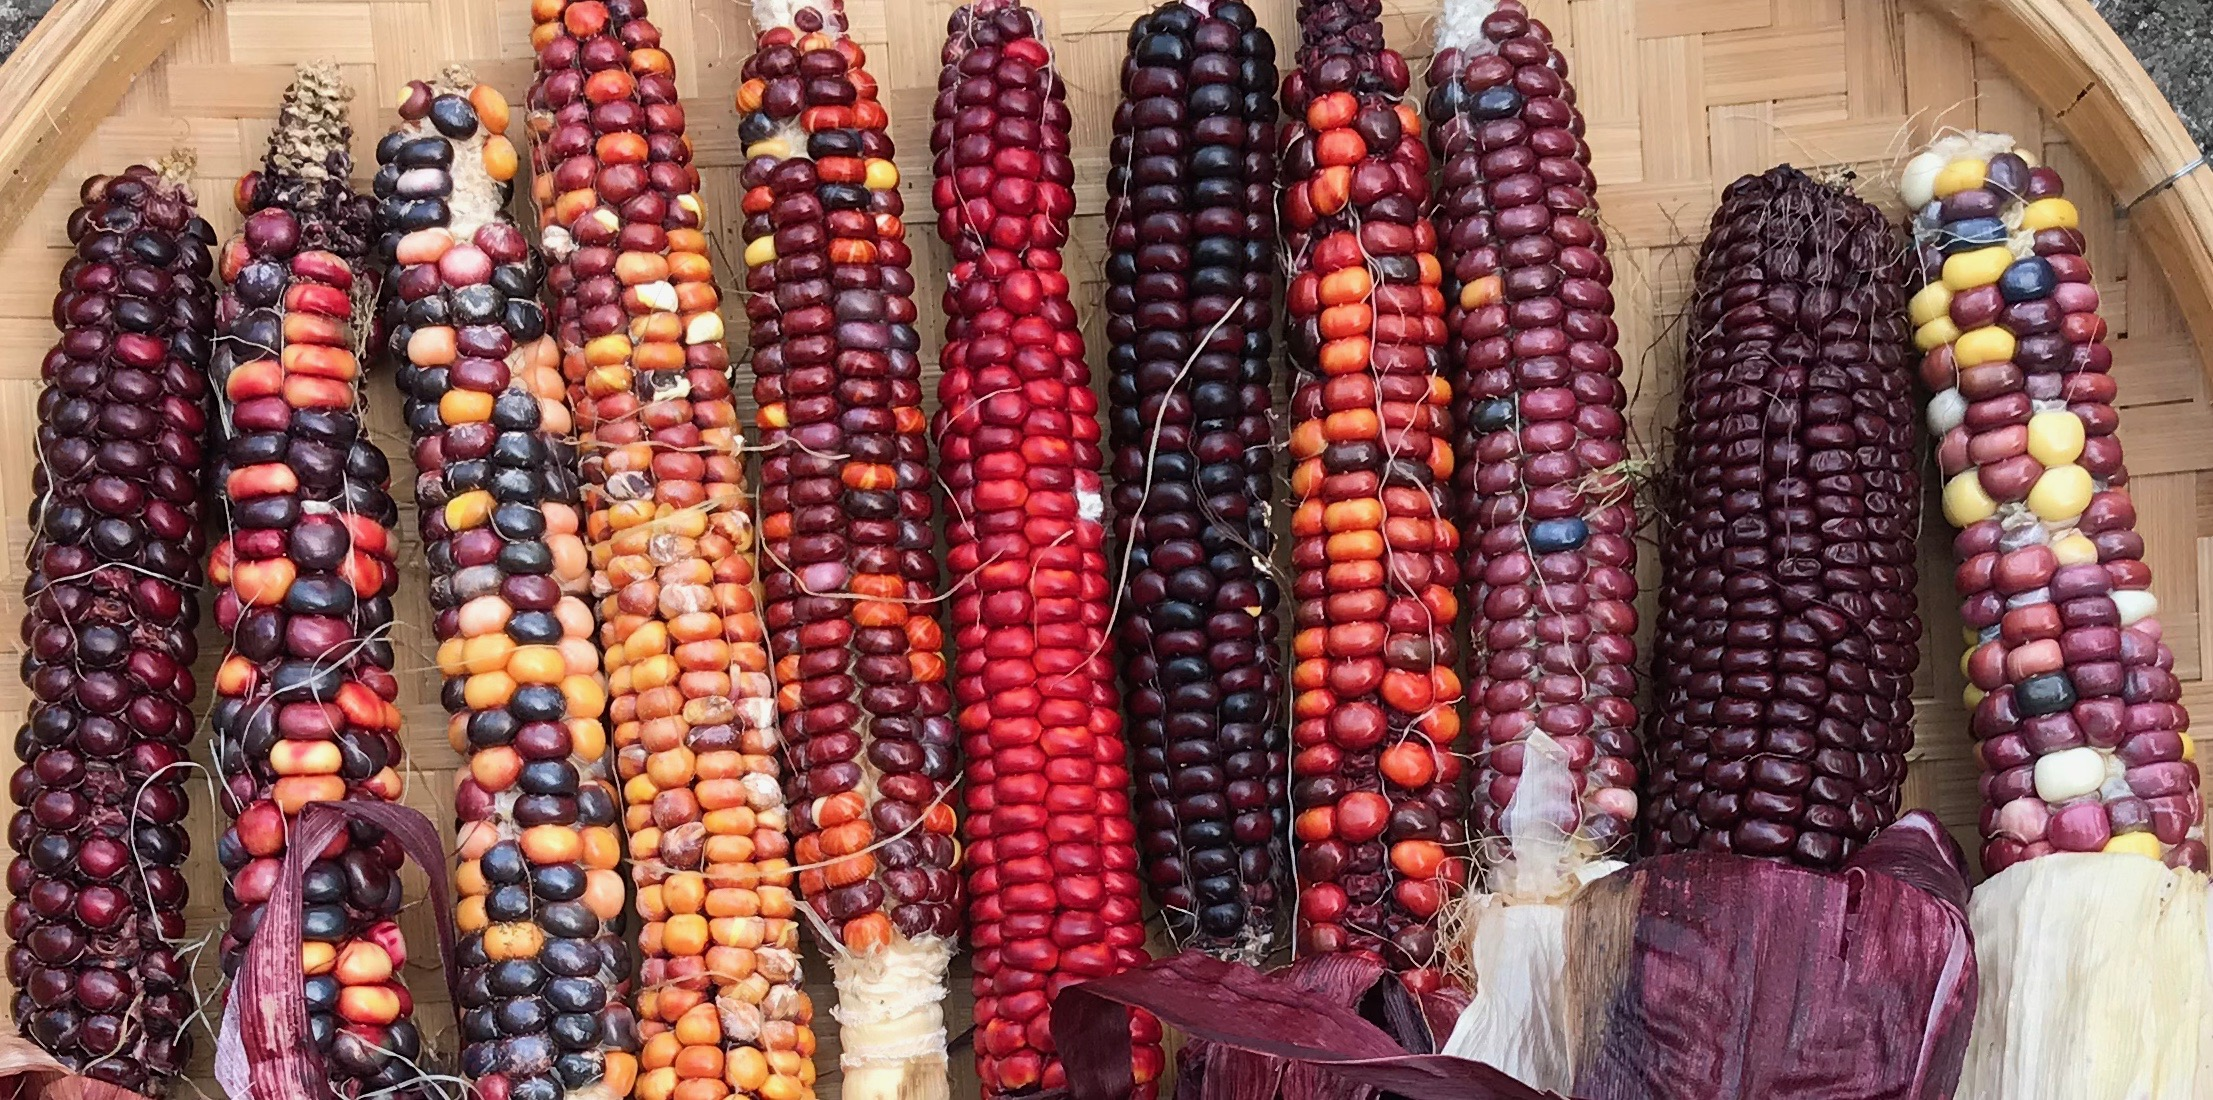 September sowing, sweetcorn harvests and recipes